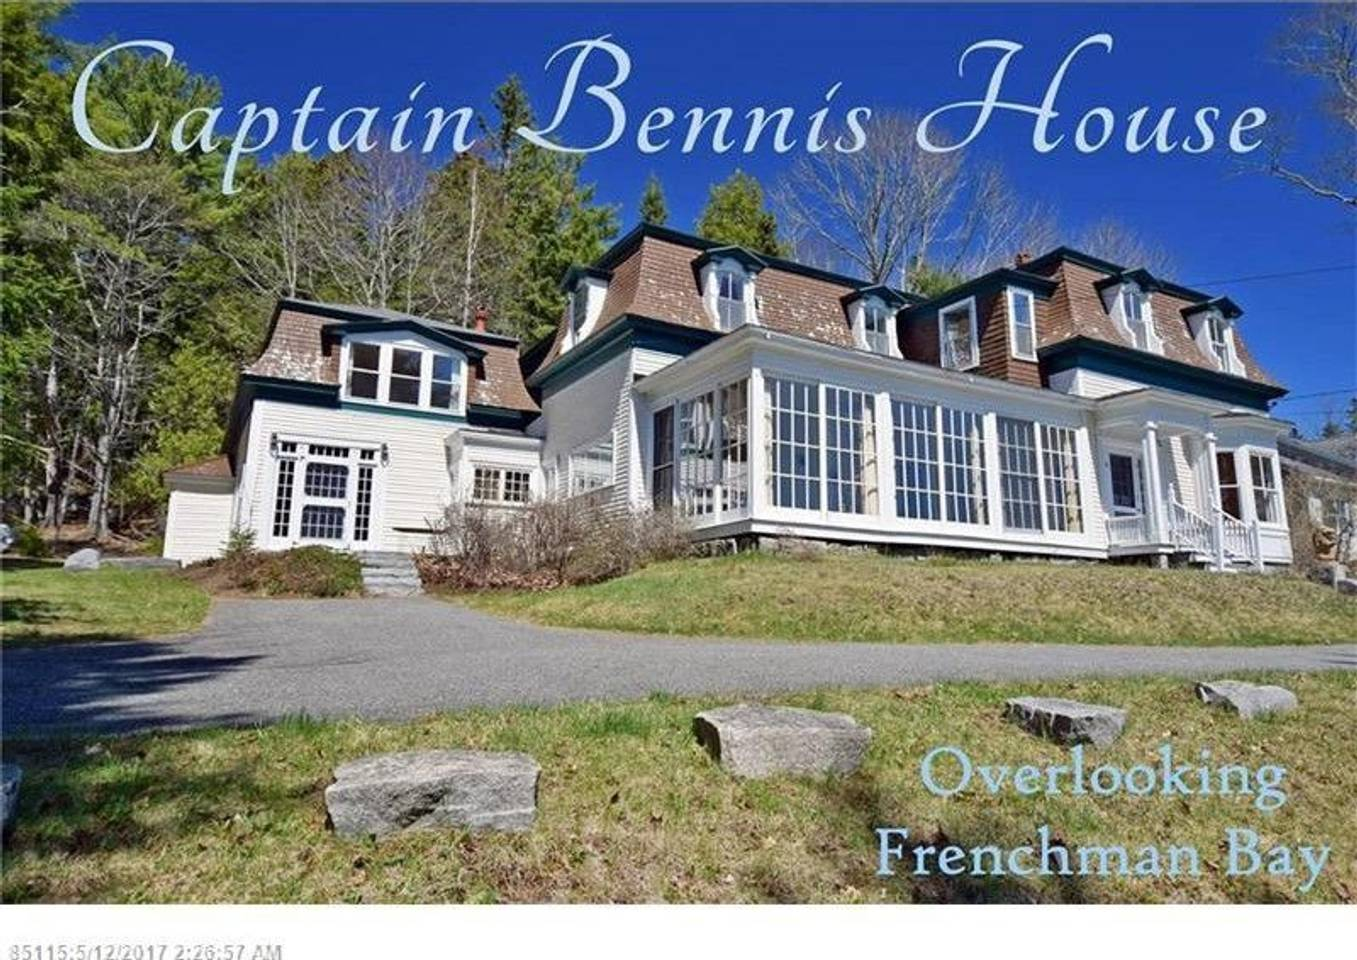 Captain Bennis House